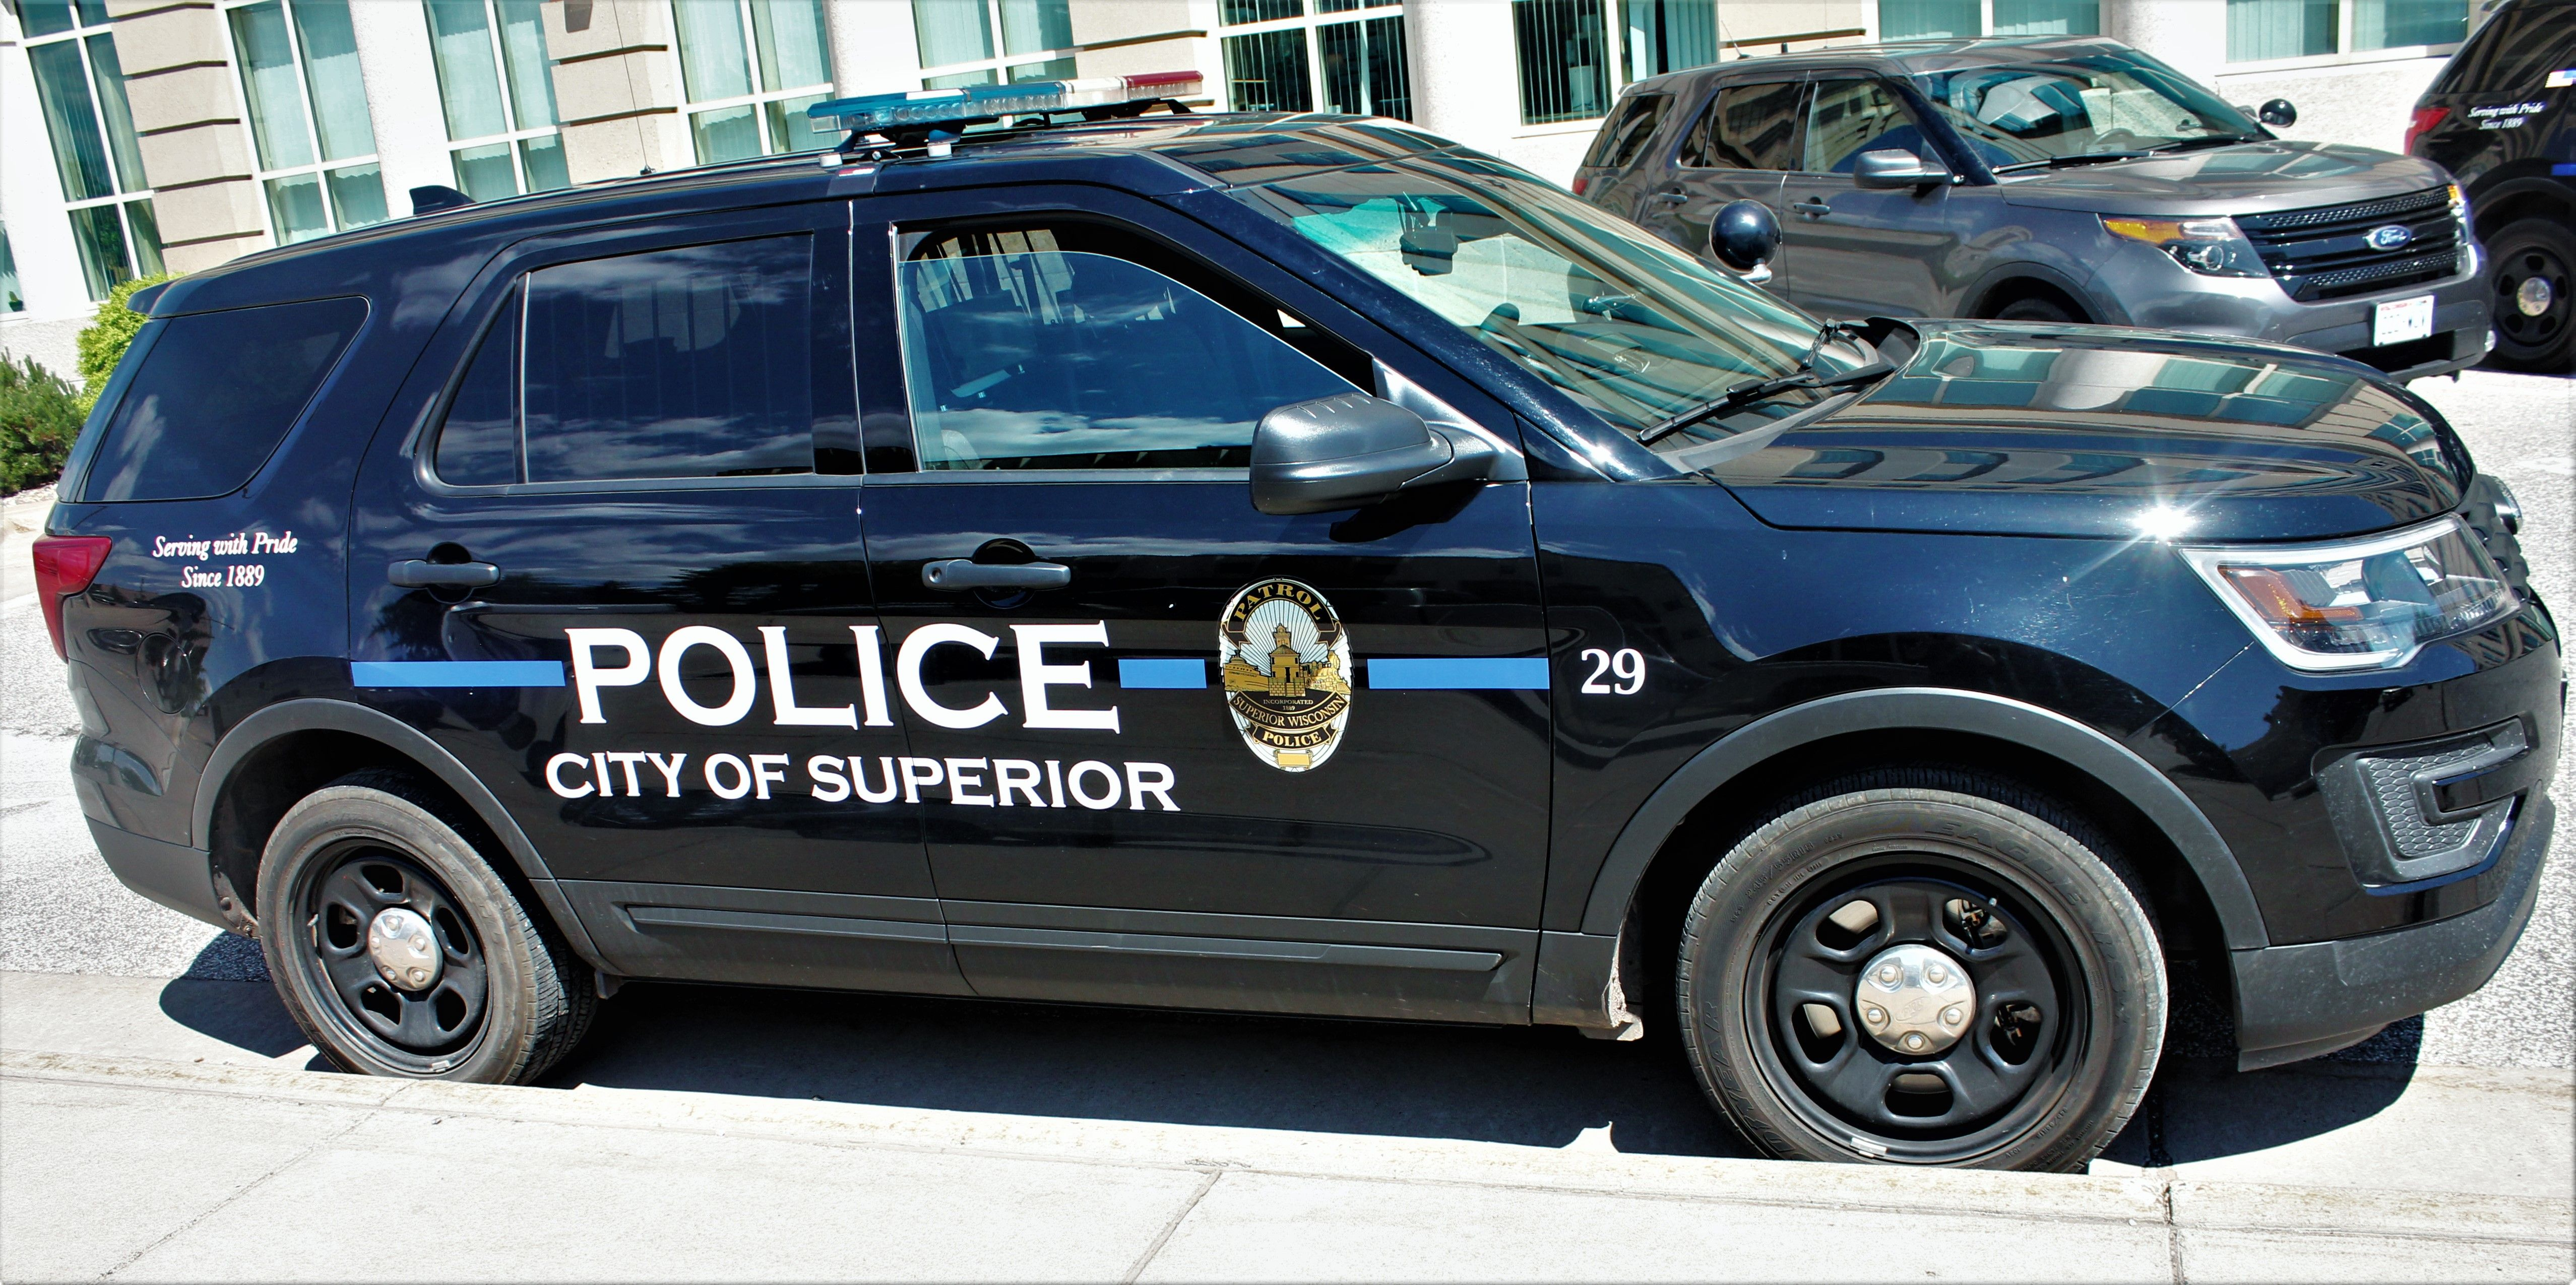 City Of Superior Wi Police 29 2016 Ford Interceptor Utility Police Cars Emergency Vehicles Police